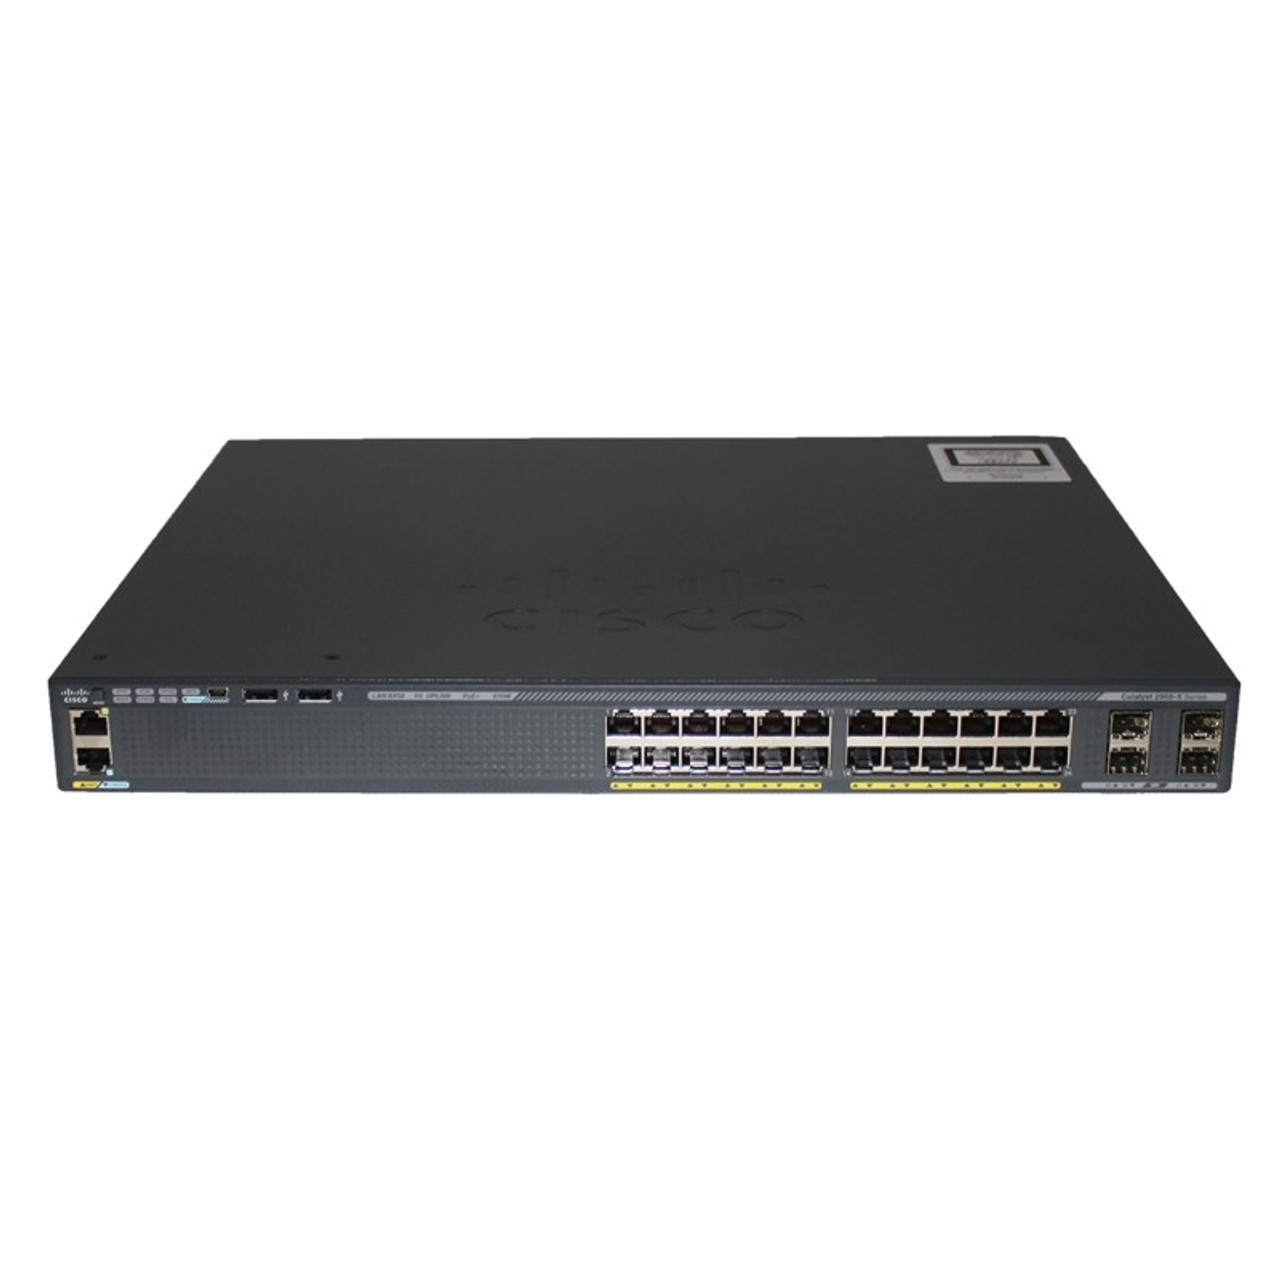 Cisco WS-C2960XR-24PS-I 2960-XR Series 24 Port Gigabit PoE 4 Port SFP Switch